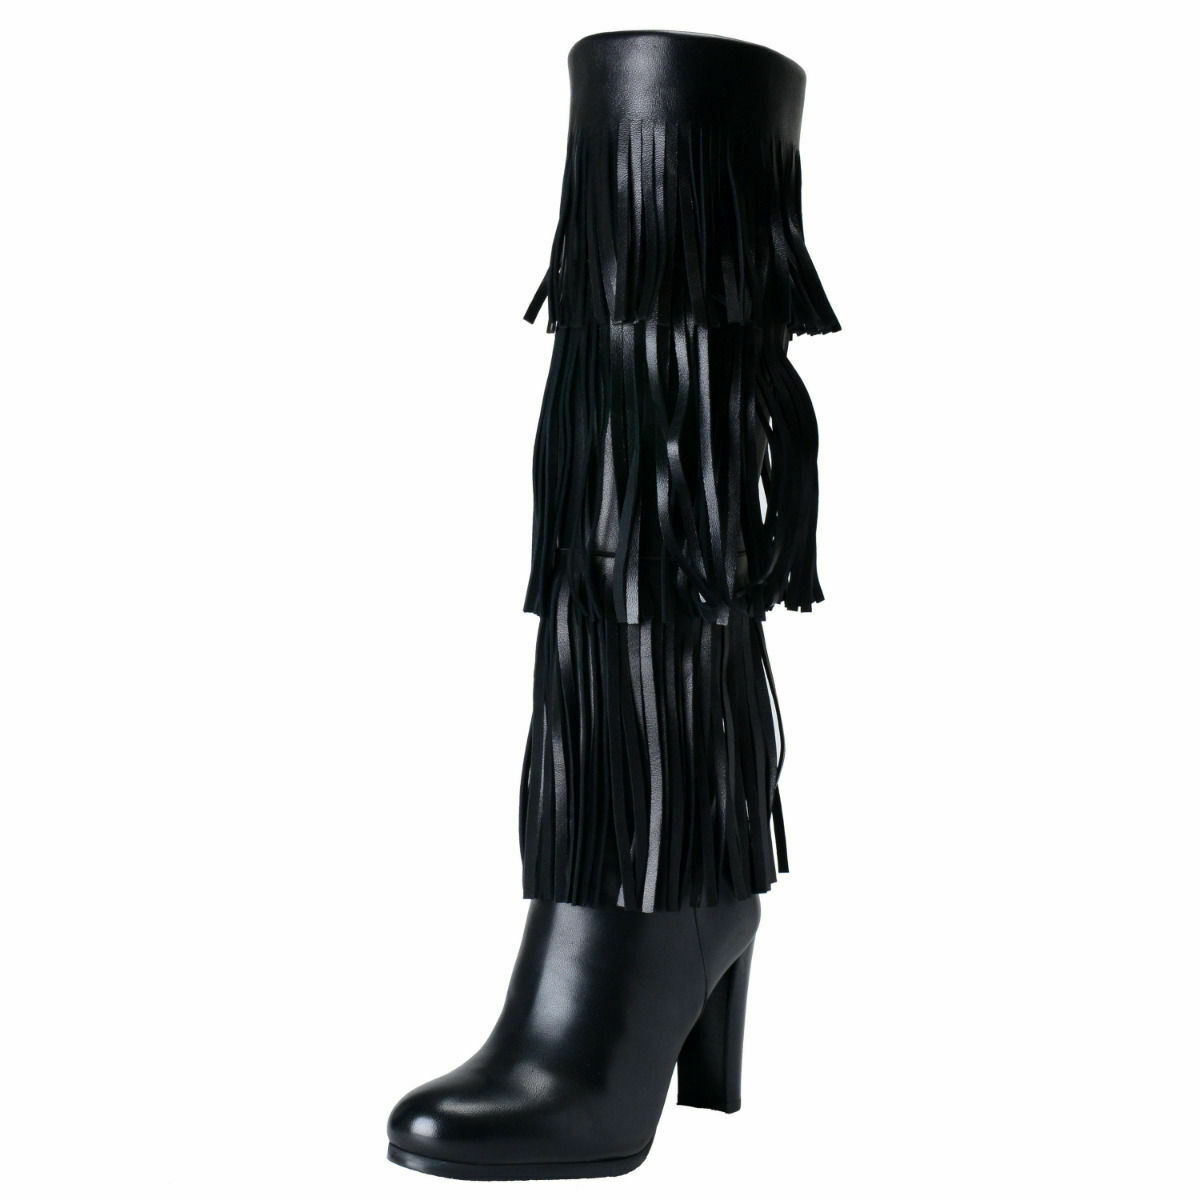 Stuart Weitzman Women's Black Leather High Heel Boots shoes Sz 5 6 6.5 9 10